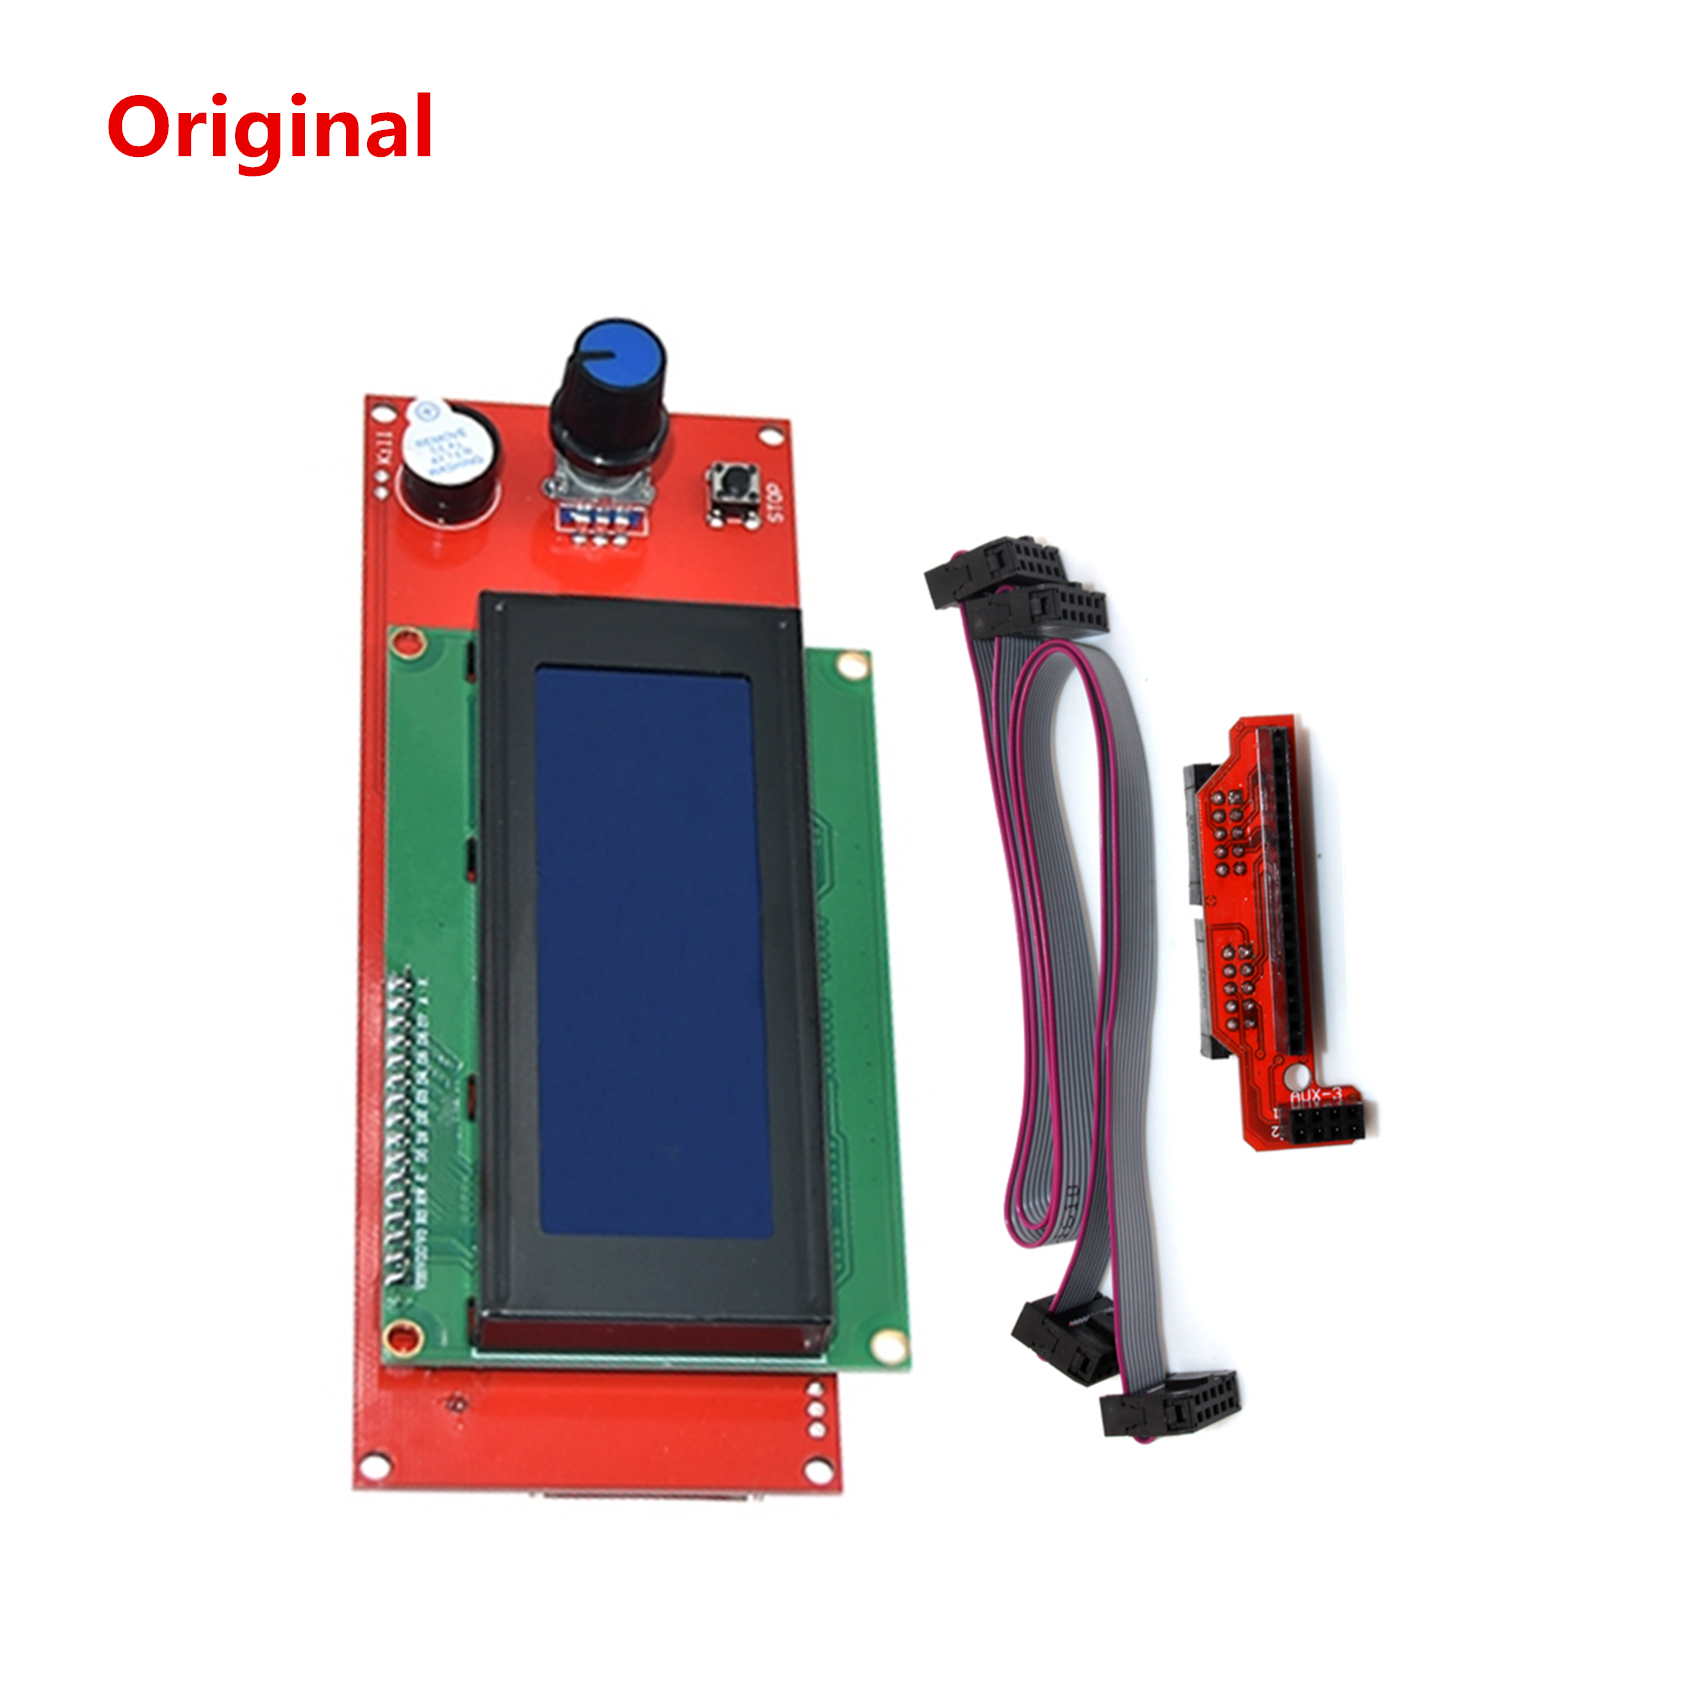 3D Printer Display Replacement Original LCD 2004 Screen Ramps 1.4 LCD Panel LCD2004 Unit Good Compatibility/durability/stability